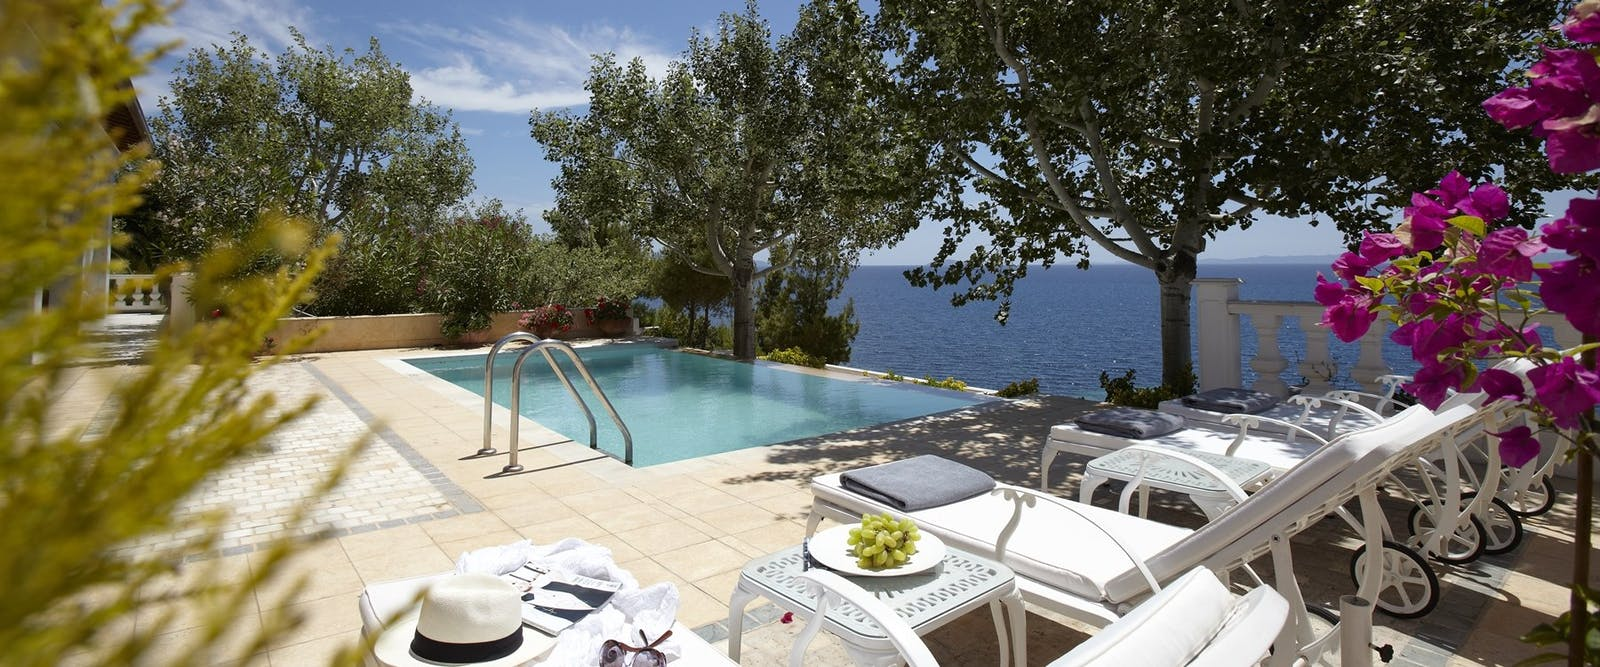 Pool at Danai Beach Resort & Villas, Halkidiki, Greece